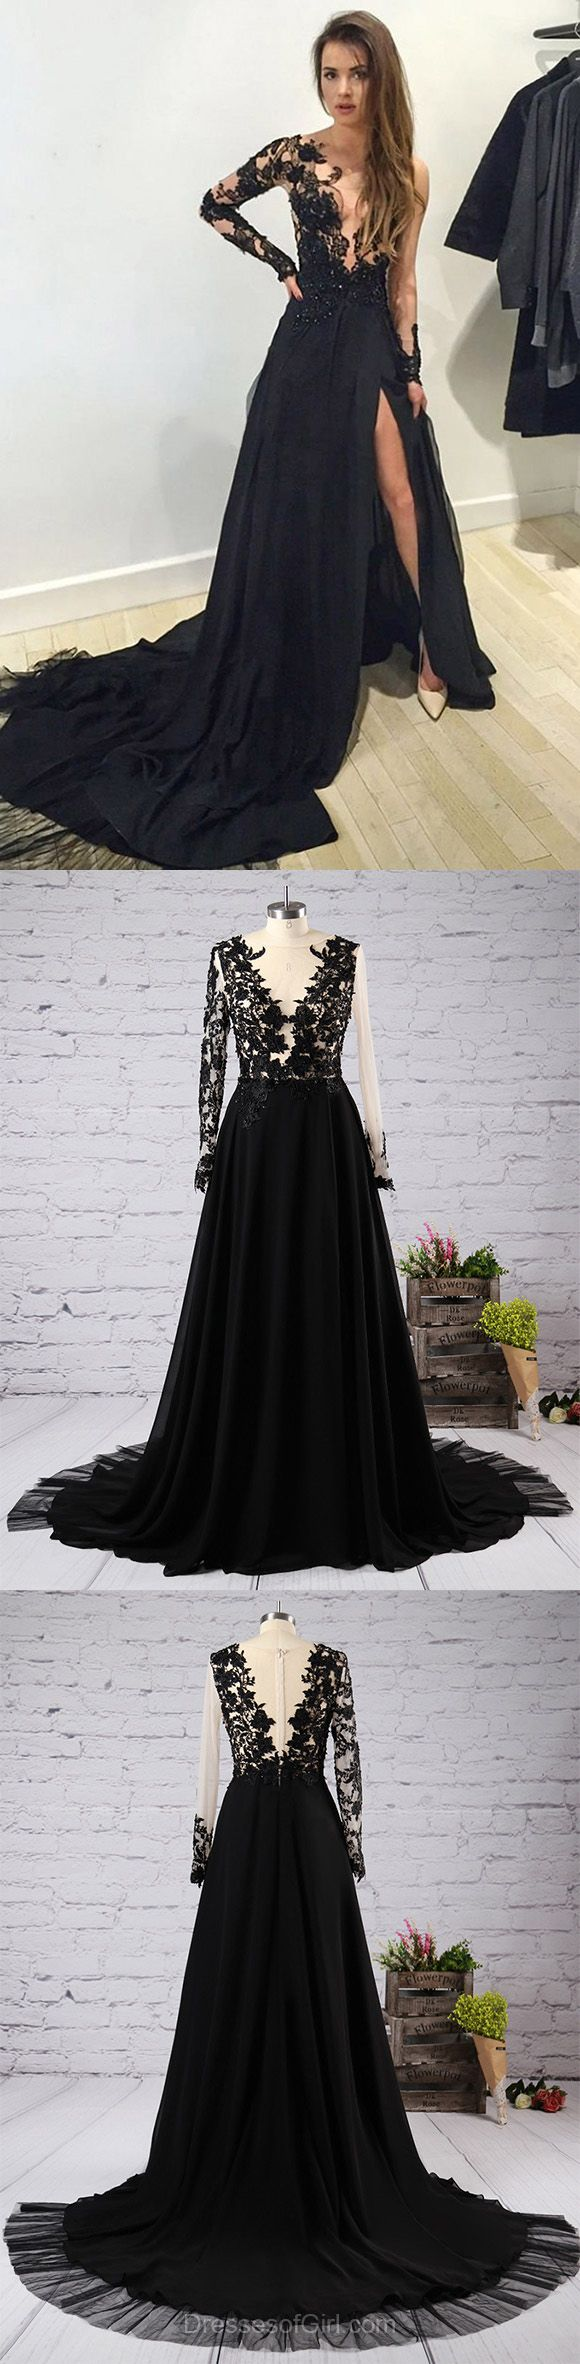 Long Sleeve Prom Dress, Aline Prom Dresses, Court Train Evening Gowns, Tulle Party Dresses, Black Formal Dresses